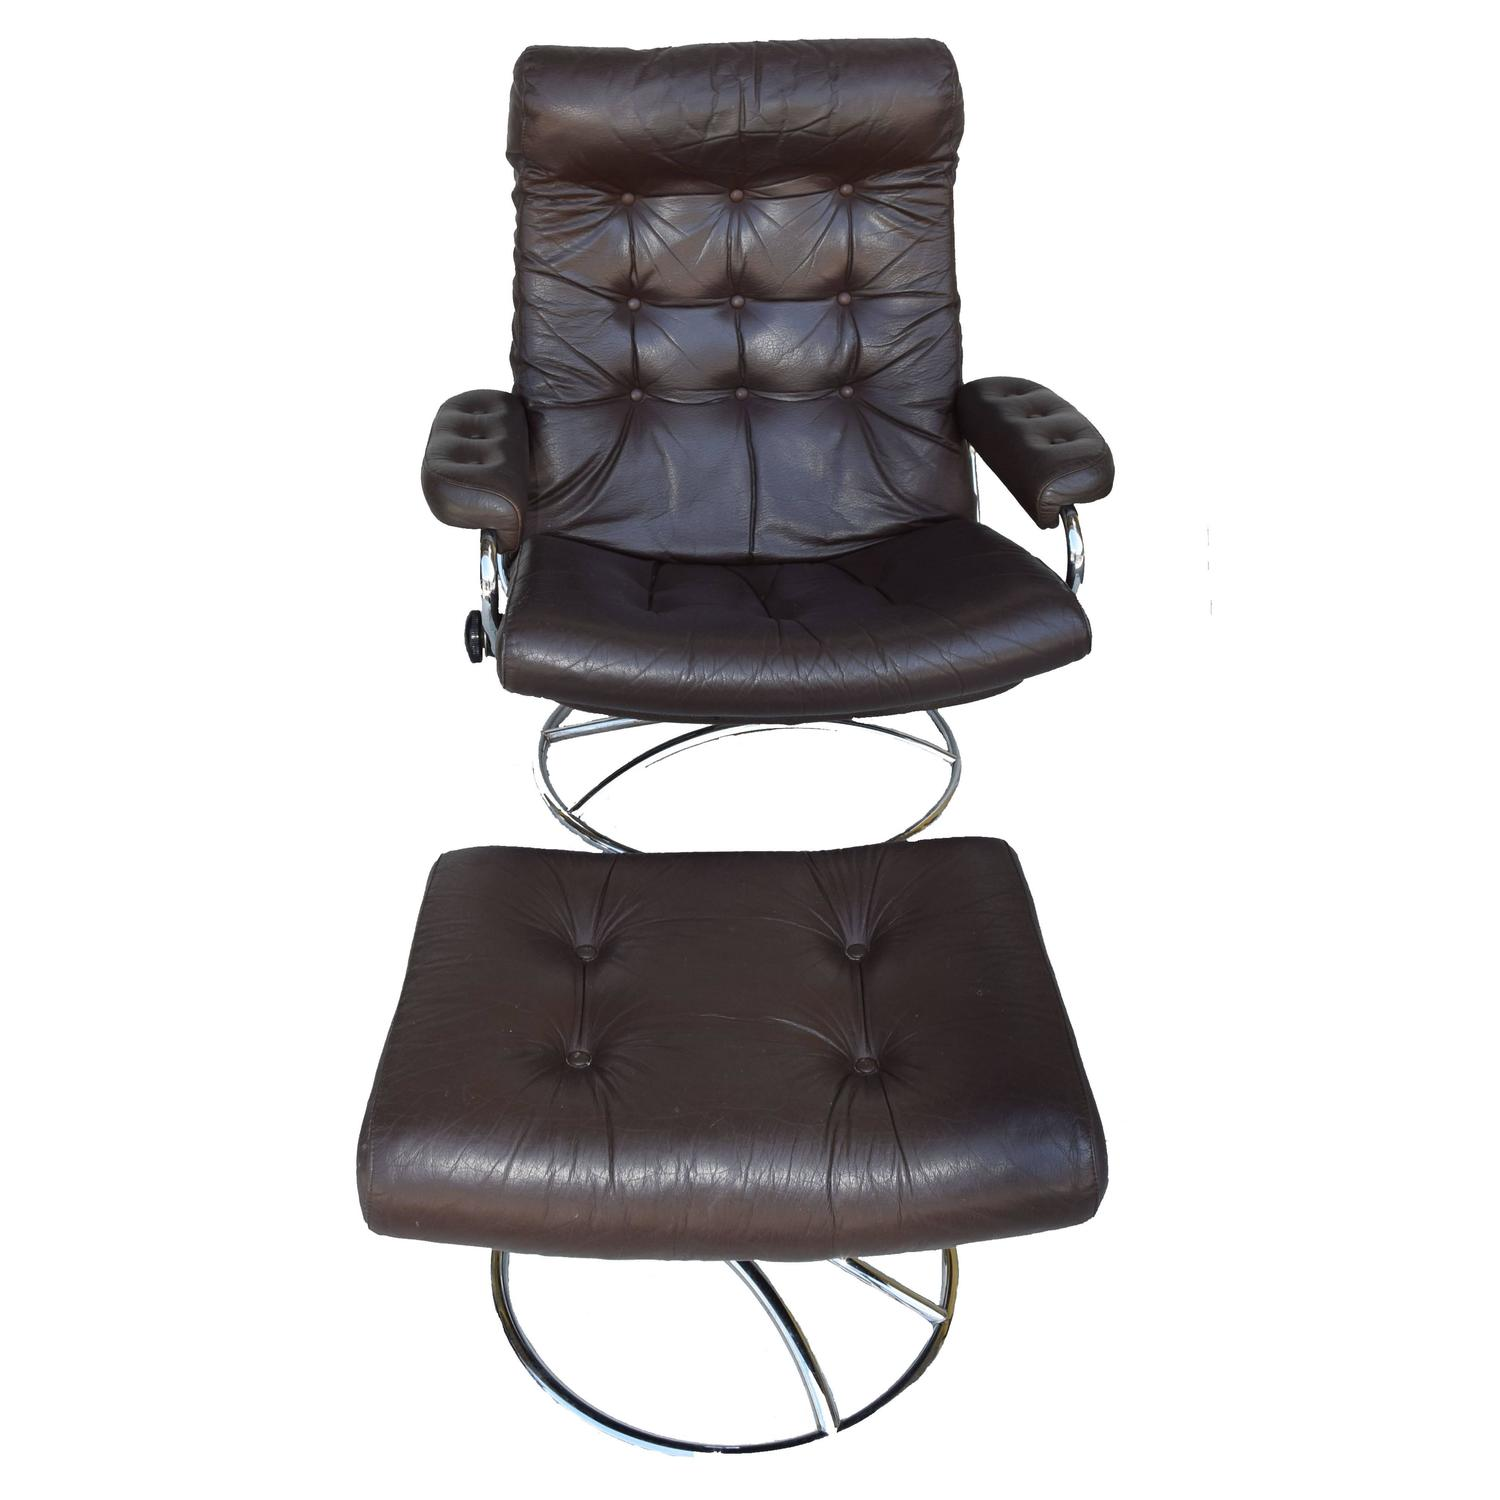 Vintage ekornes chair - Ekornes Stressless Chair And Ottoman 1972 For Sale At 1stdibs